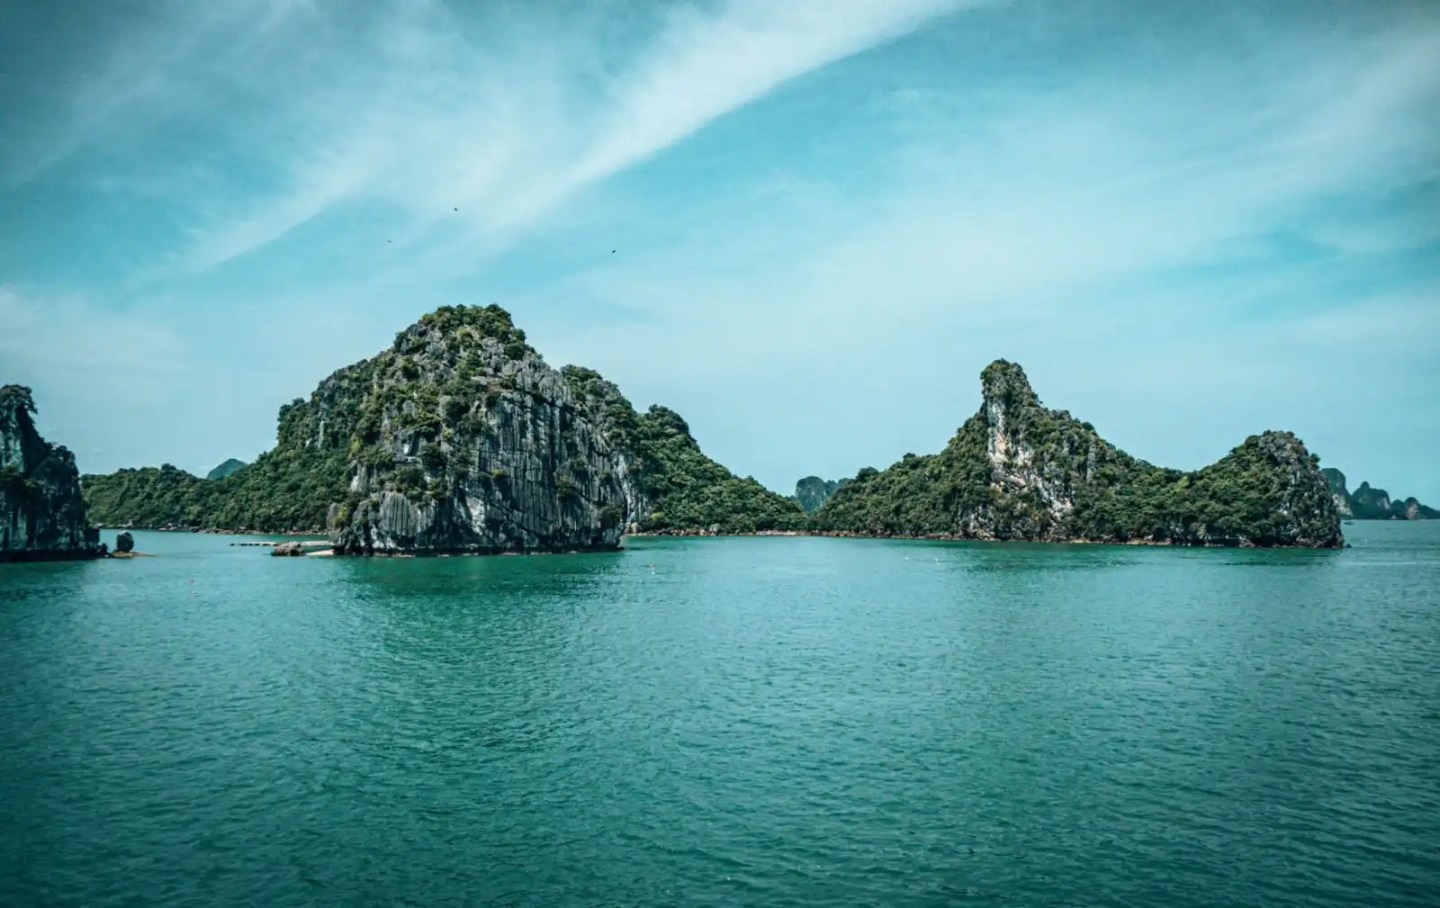 Bai Tu Long Bay tour, limestone cliffs